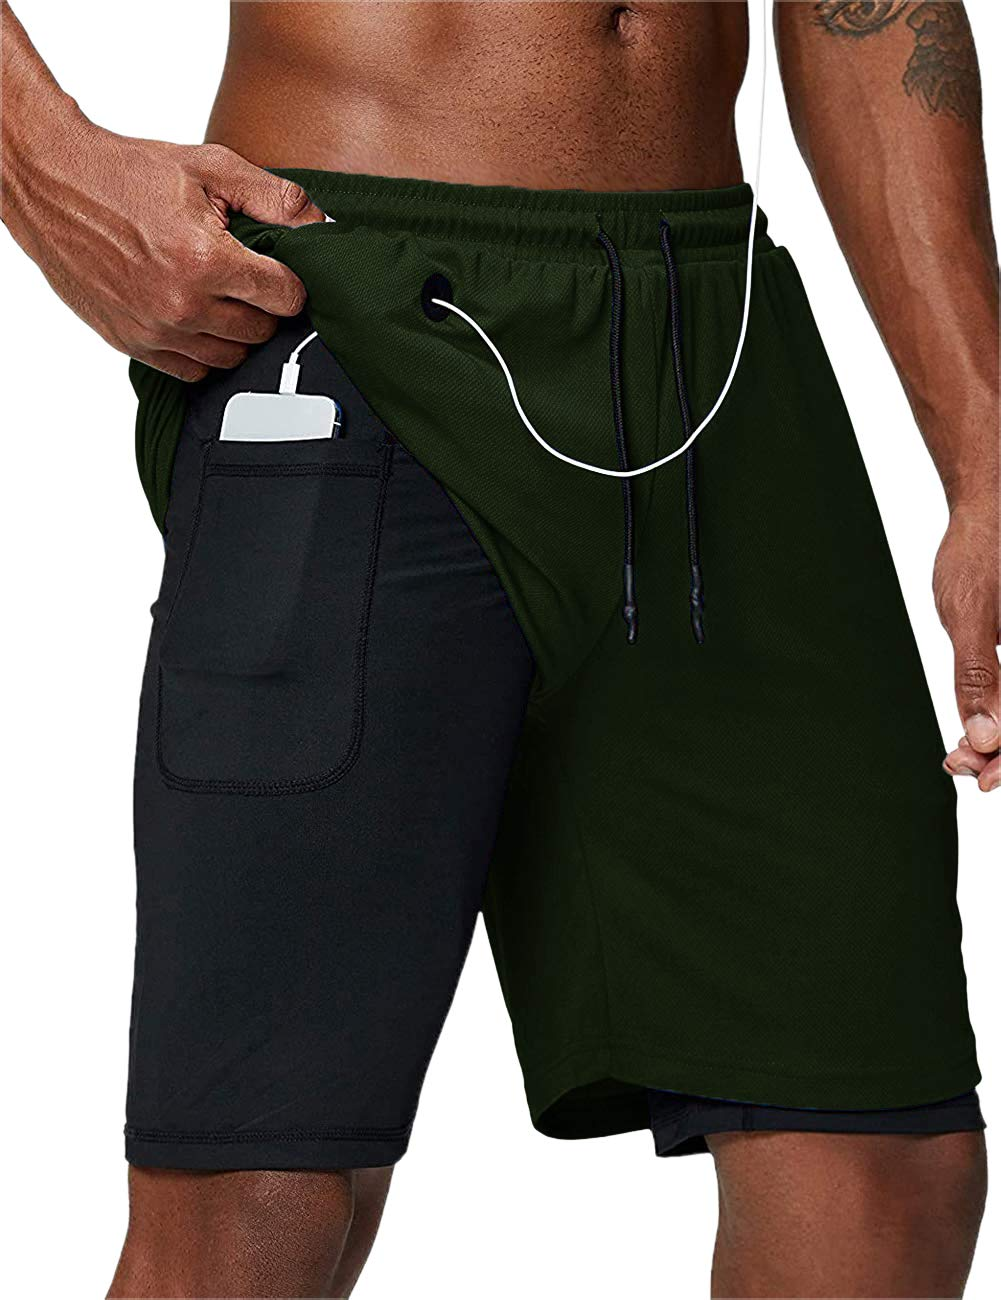 Makkrom Mens Running 2 in 1 Shorts Workout Athletic Gym Short with Pockets